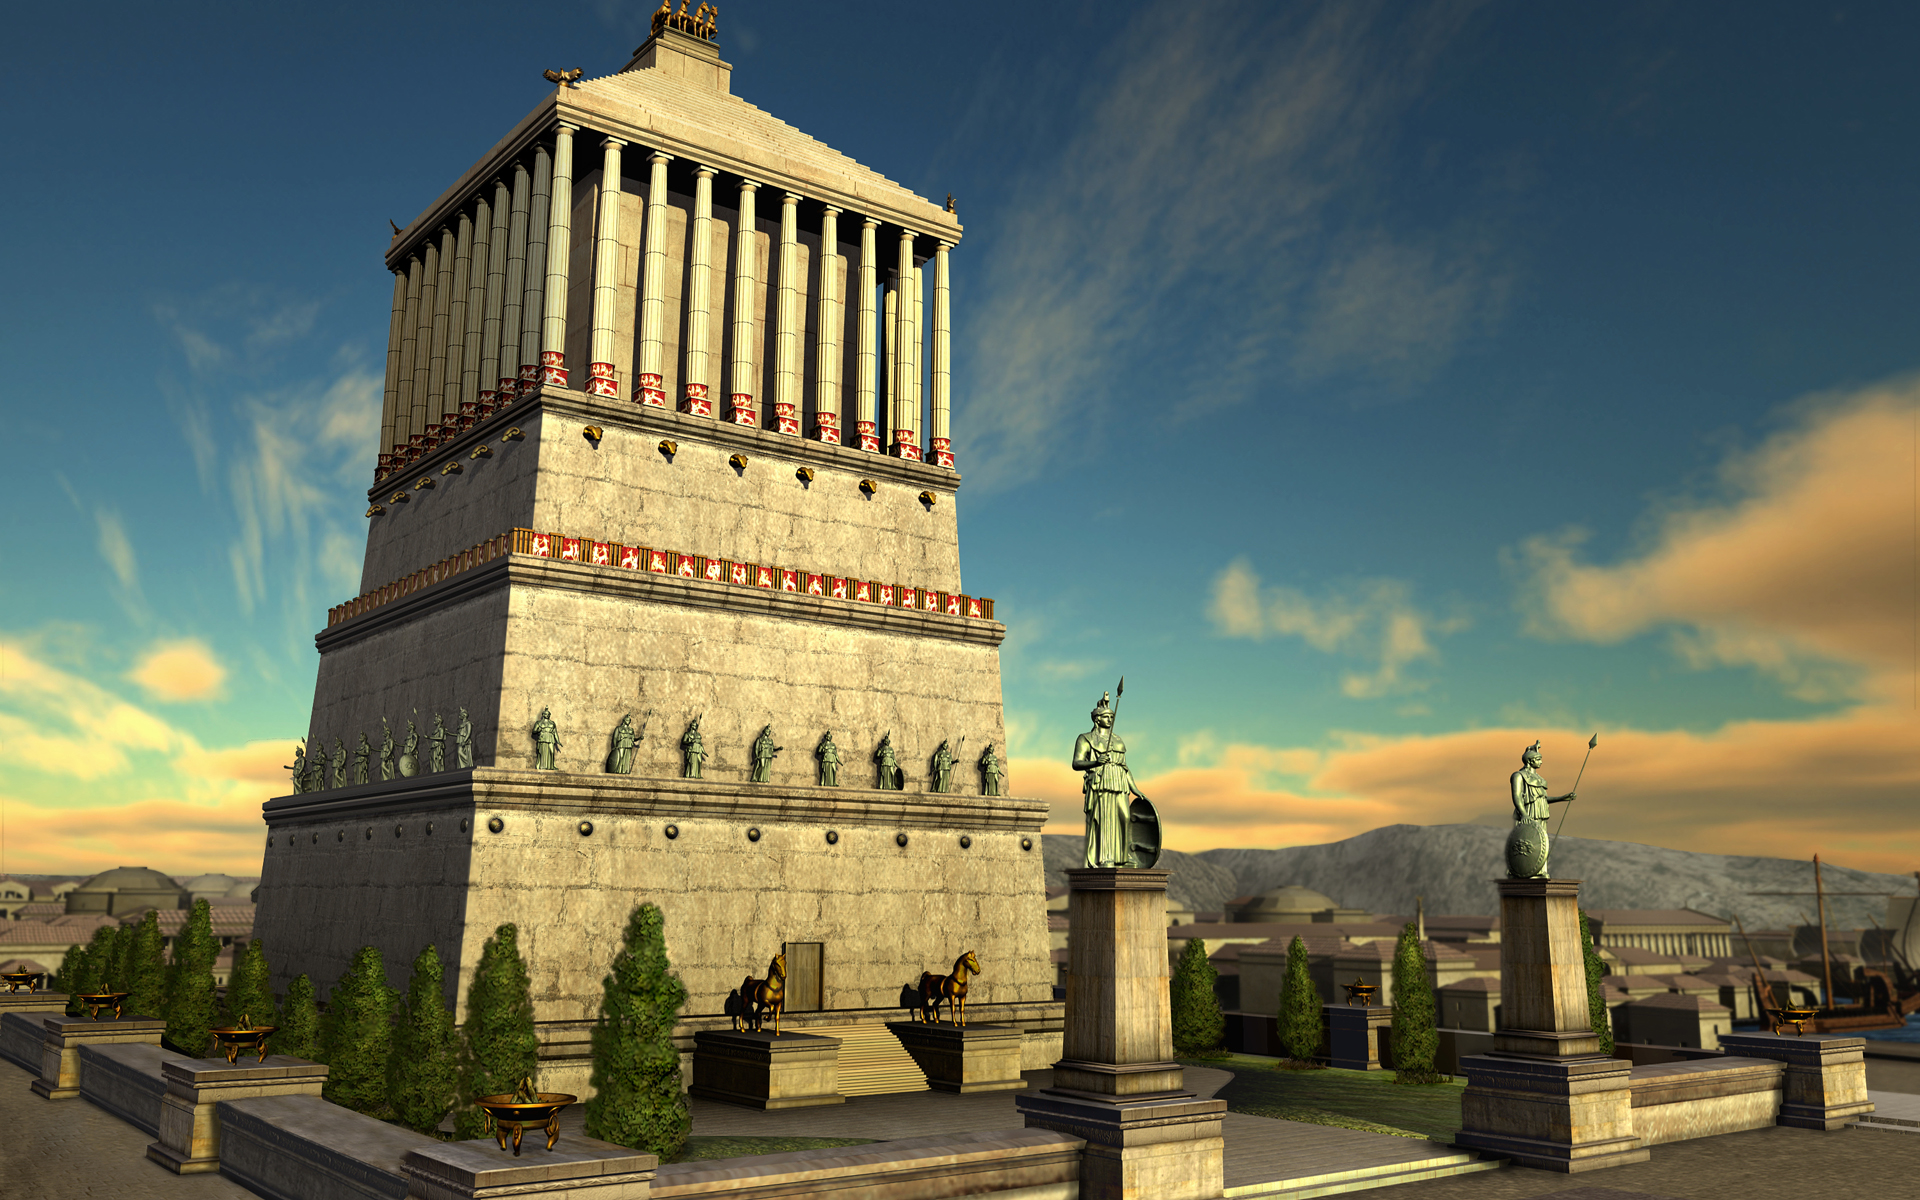 Temple of Halicarnassus Civ IV